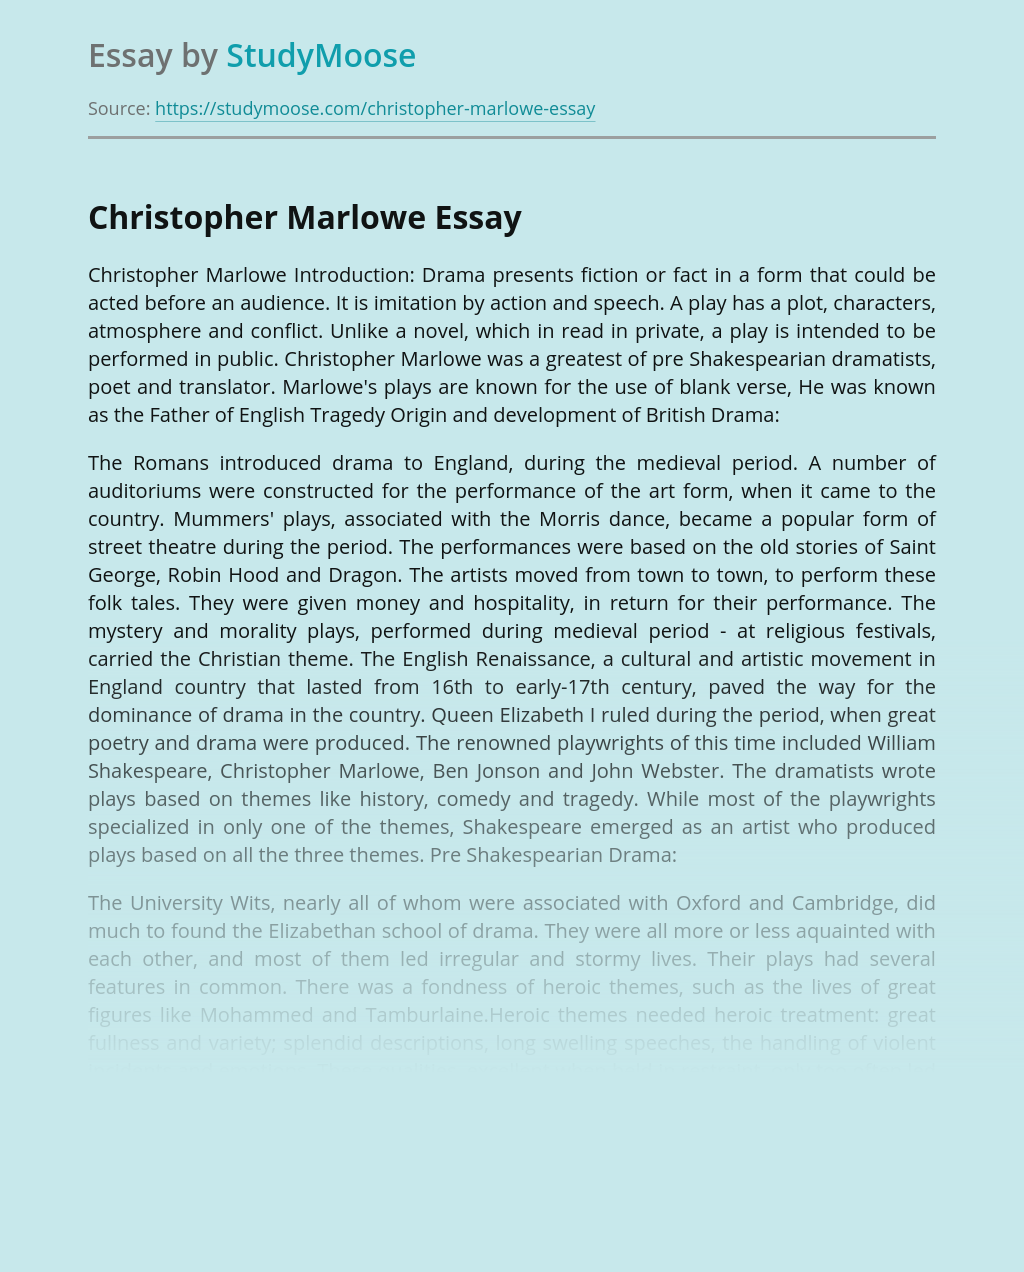 About Christopher Marlowe